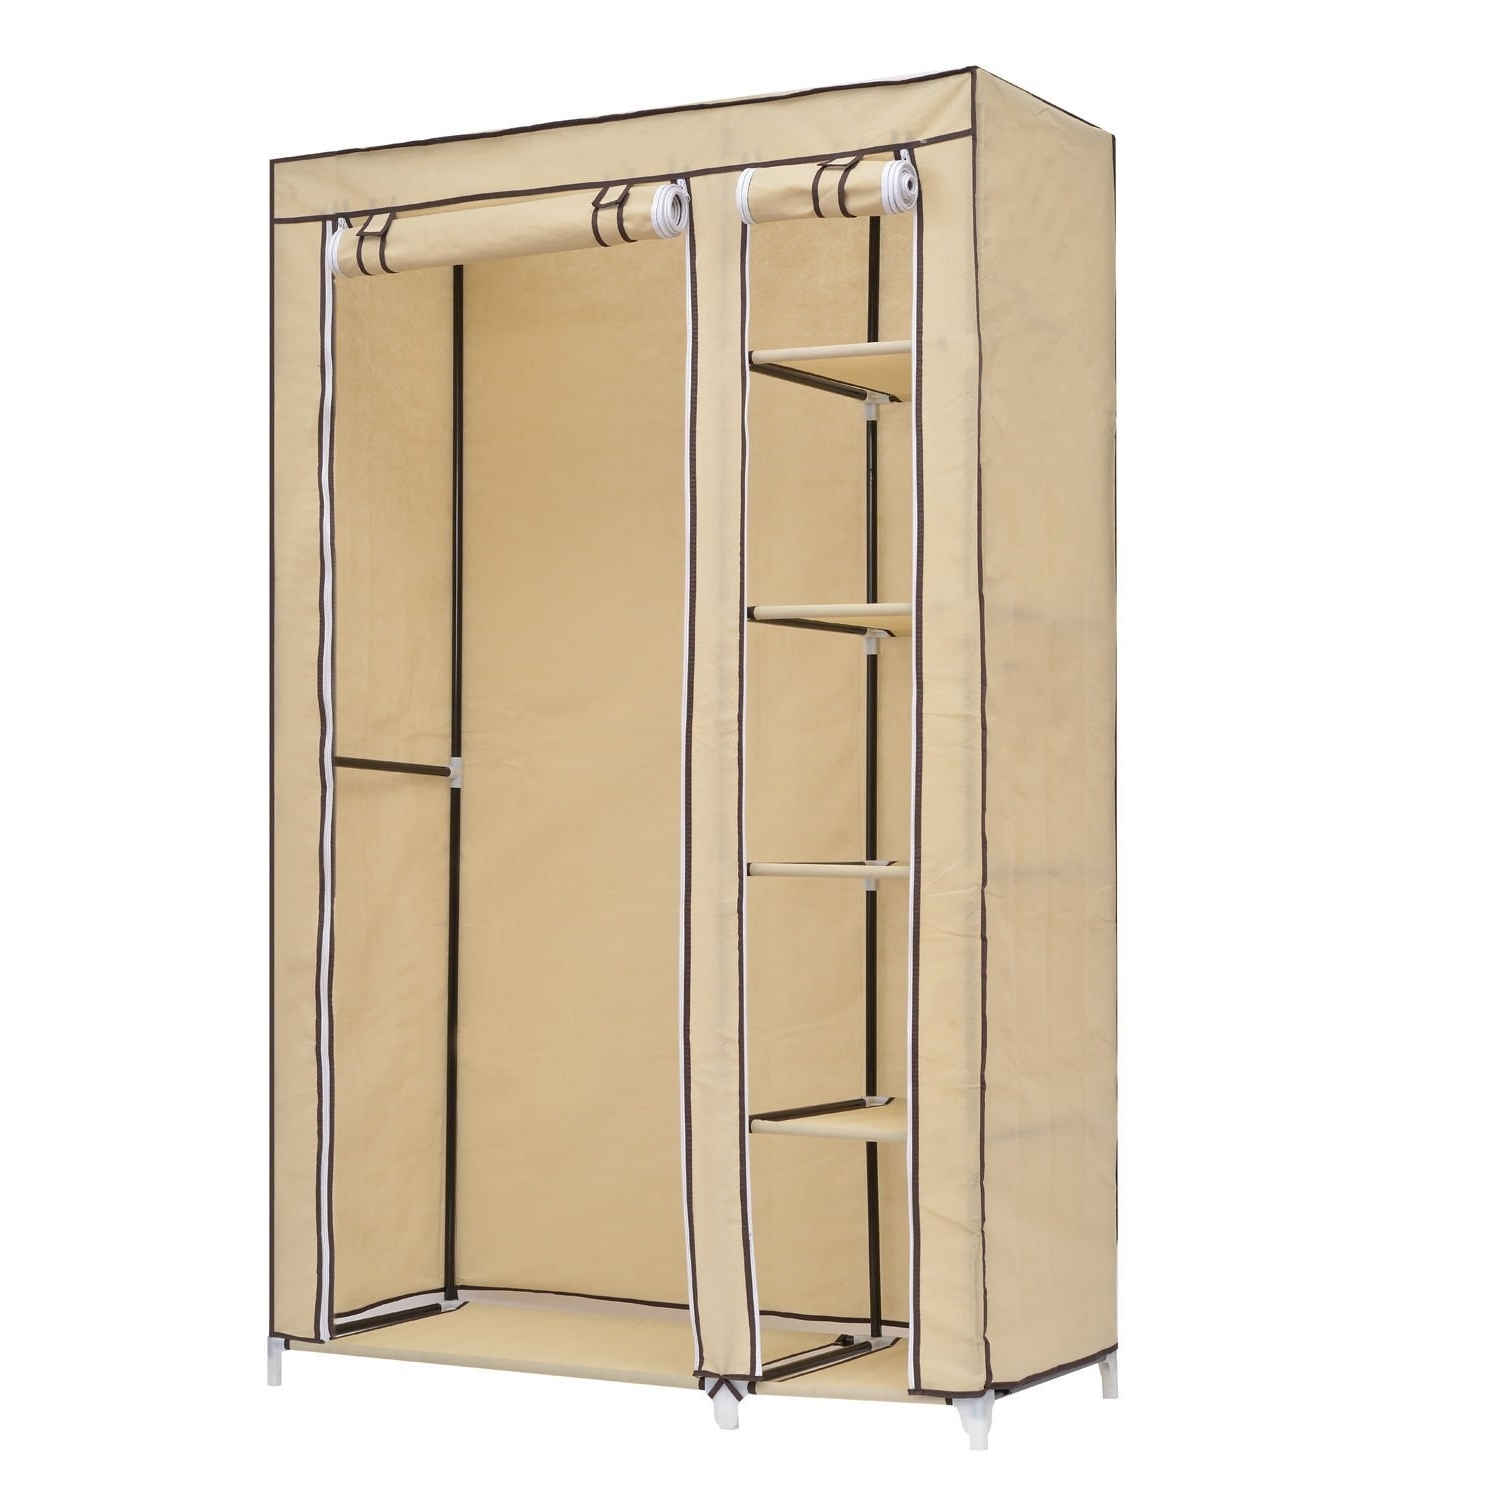 Latest Closet Storage : Portable Closet Walmart Walmart Wardrobe Wood Within Mobile Wardrobes Cabinets (View 5 of 15)